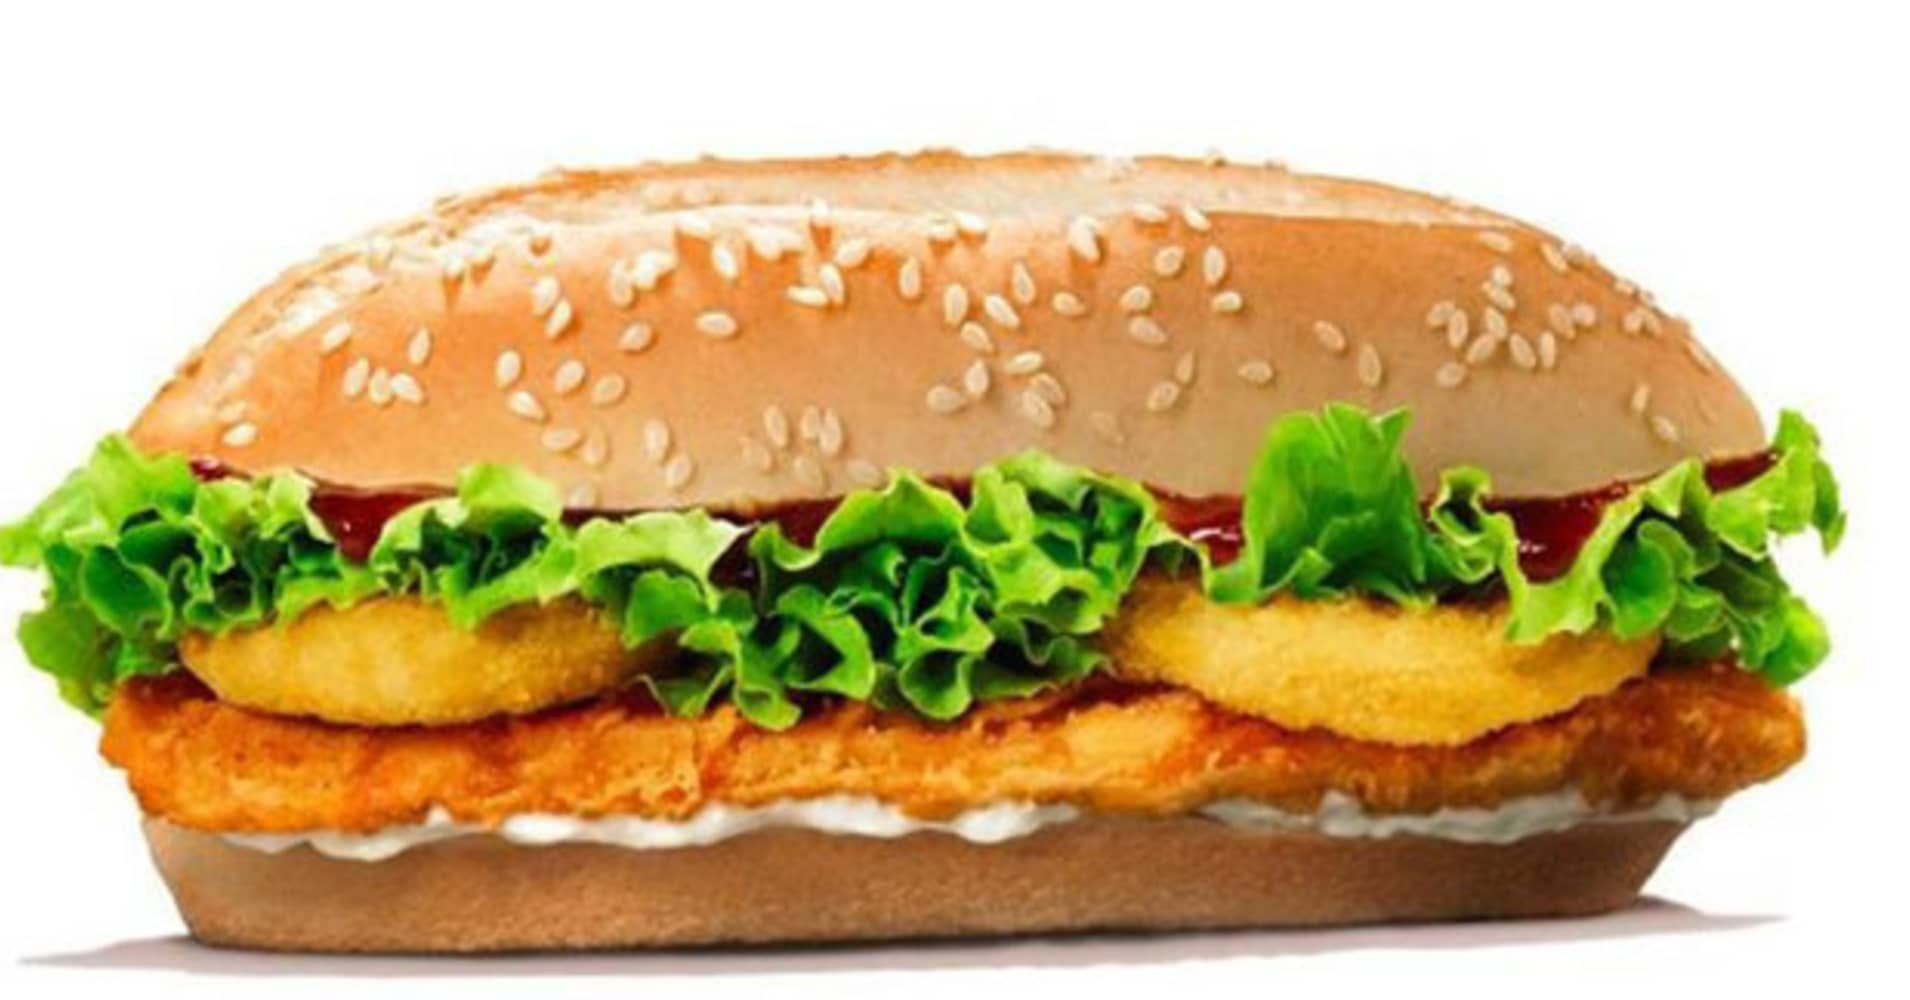 Burger King has released a new chicken burger in honor of the royal couple's wedding.